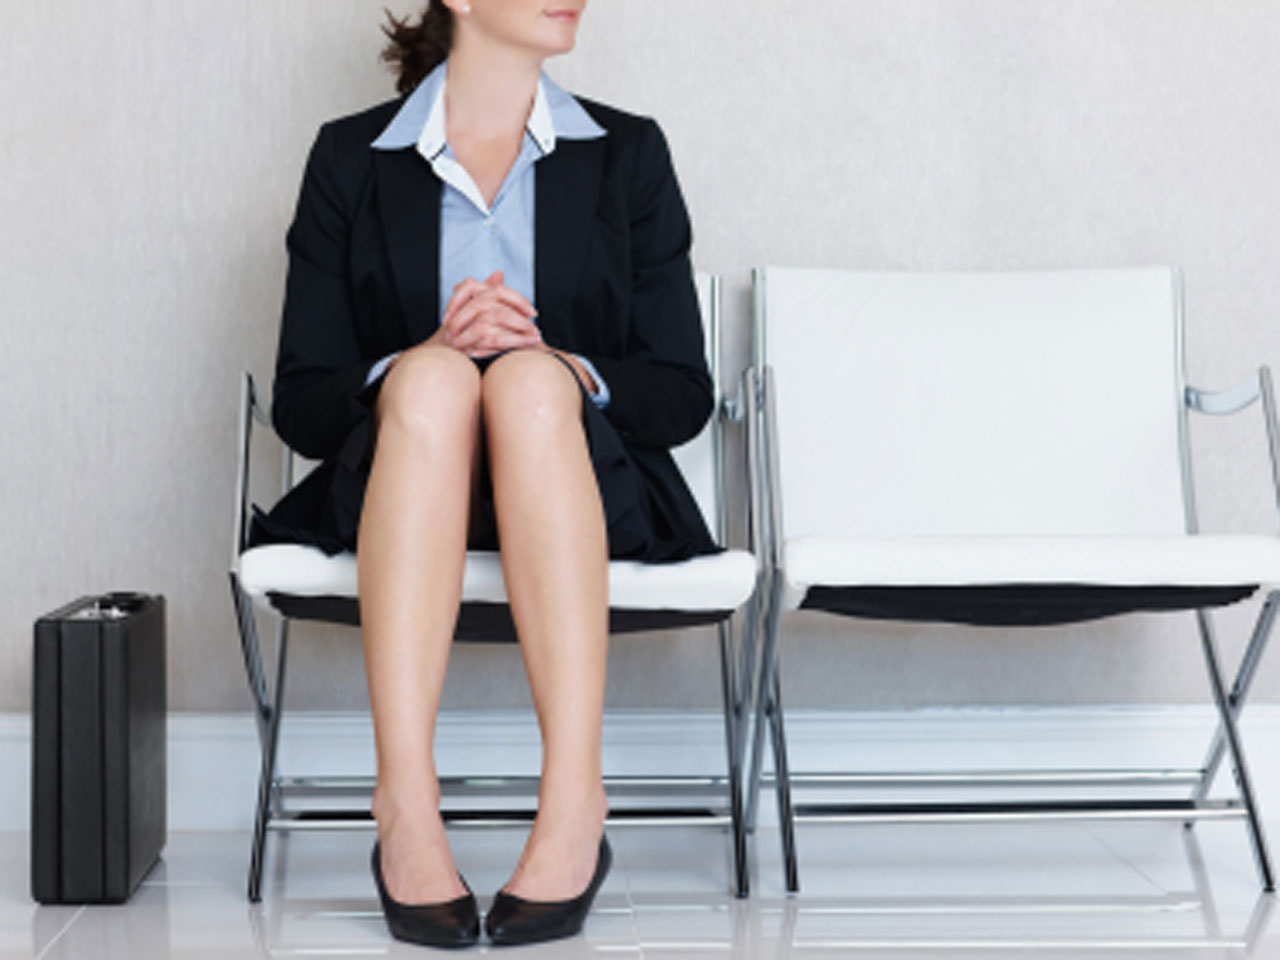 9 tips to prepare for a job interview cbs news